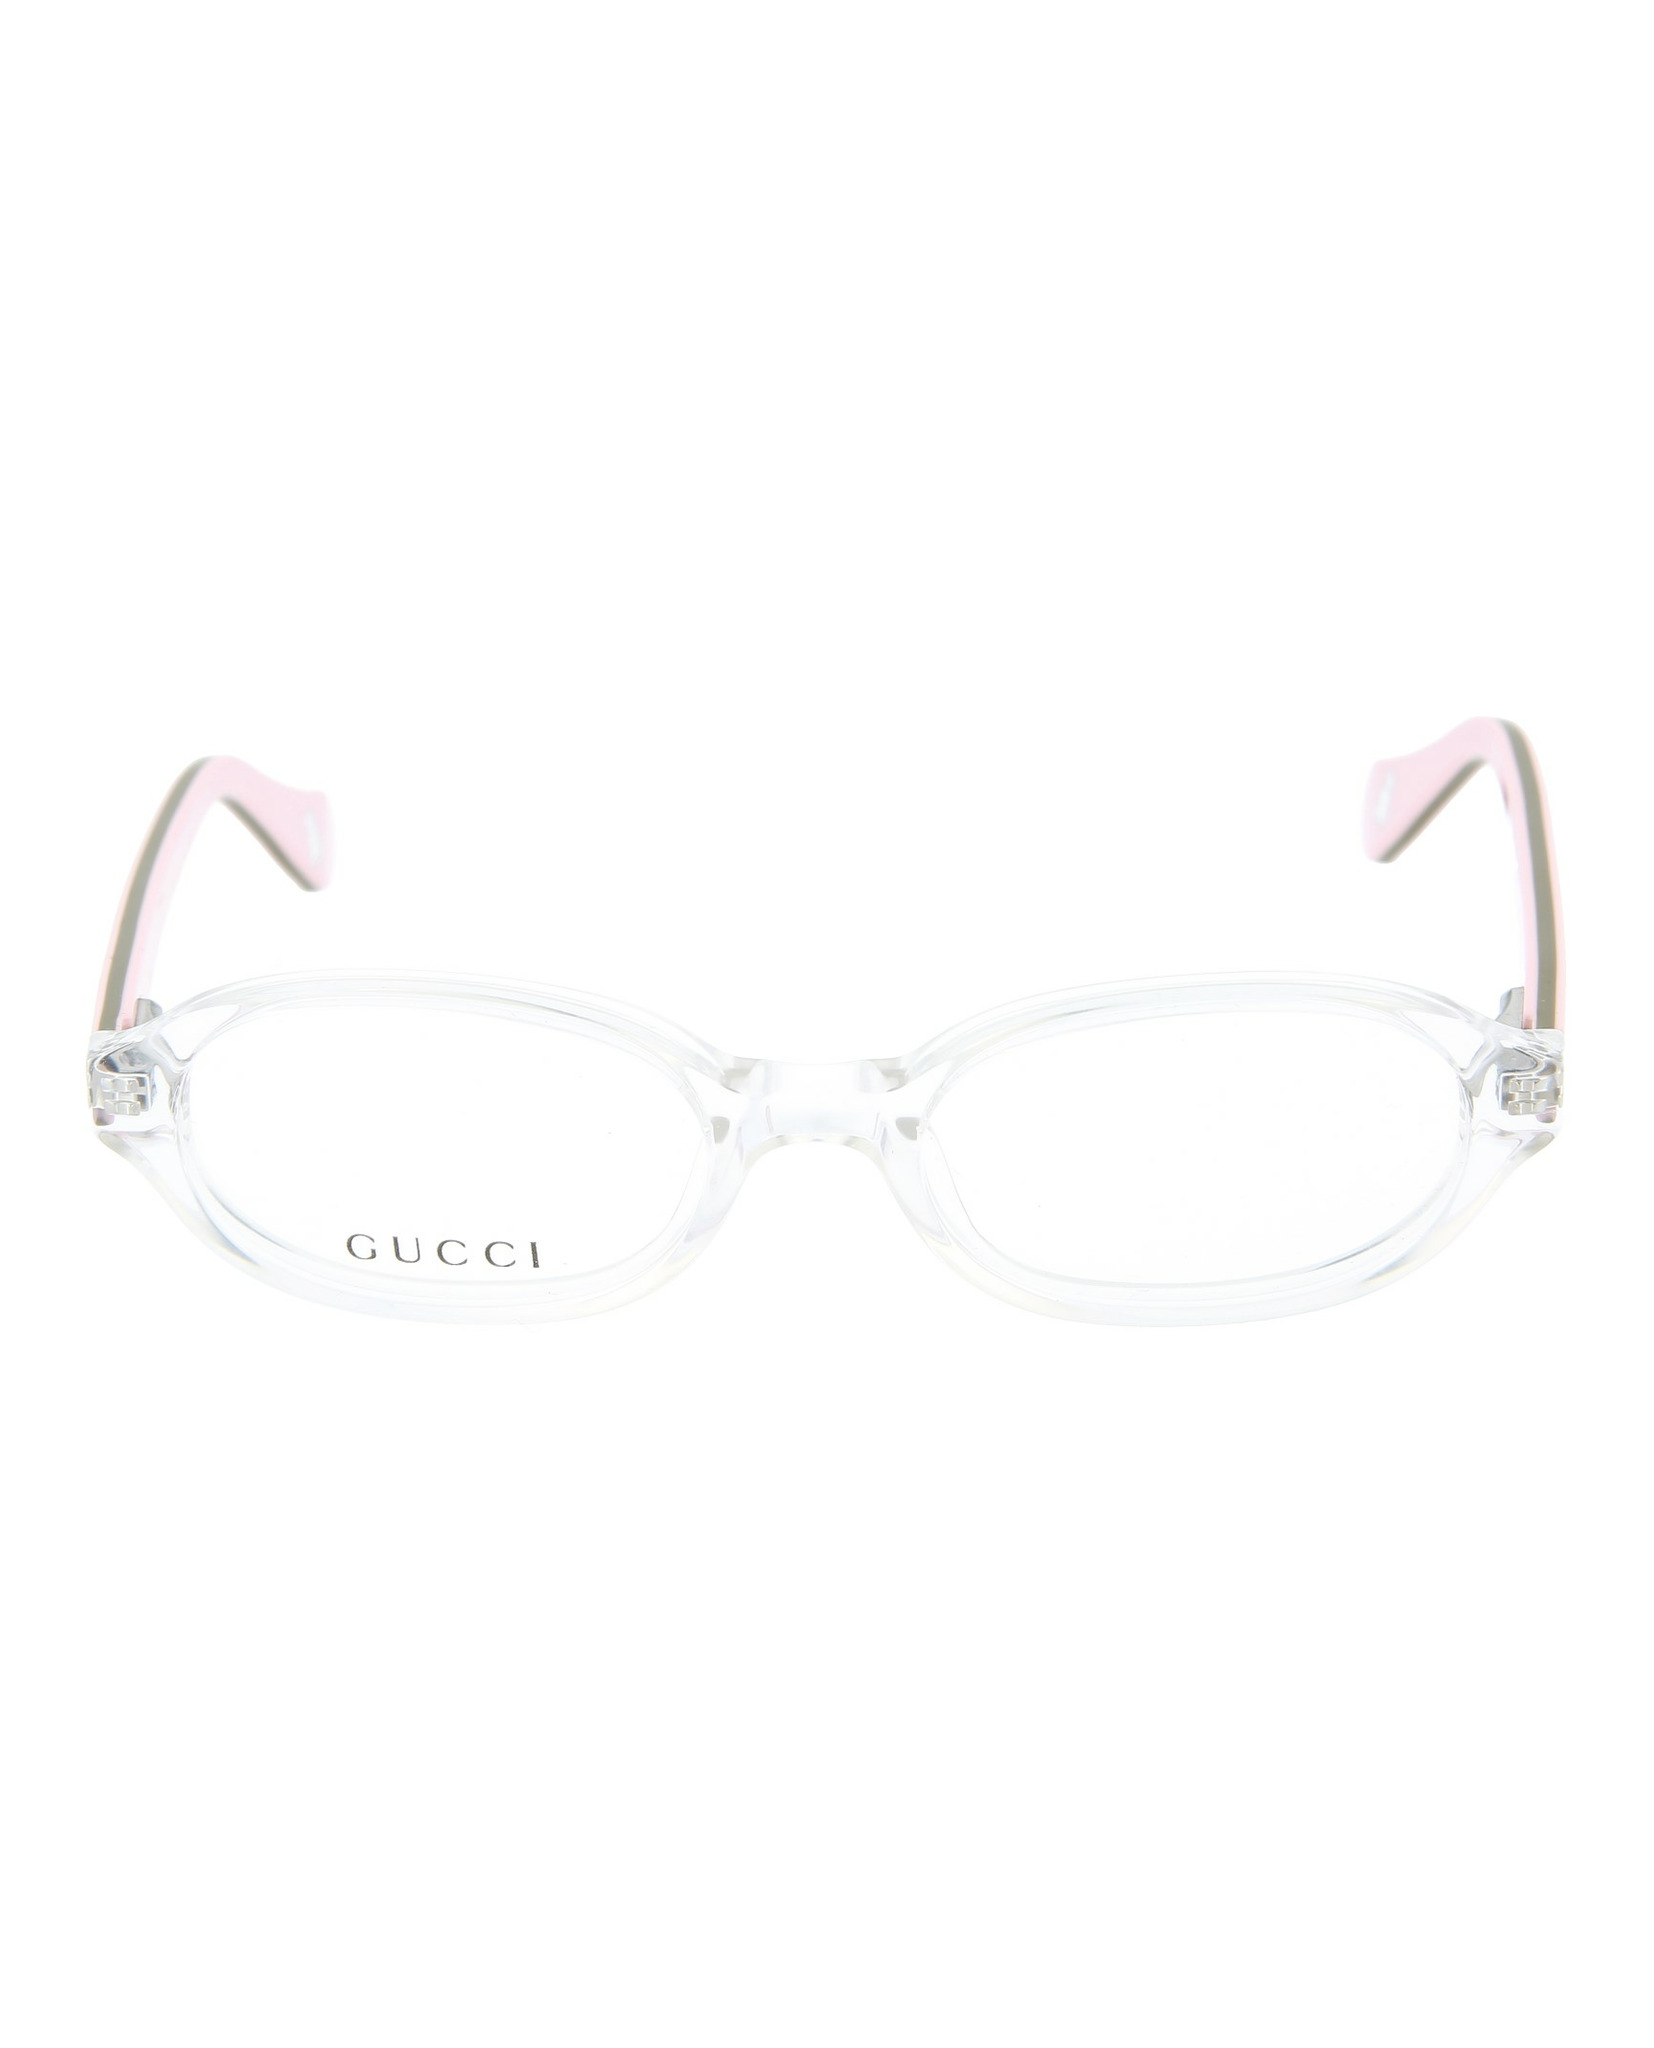 47a7aba69dd Gucci Kids Round Oval Optical Frames GG5002C-1135305I4-4416 ...